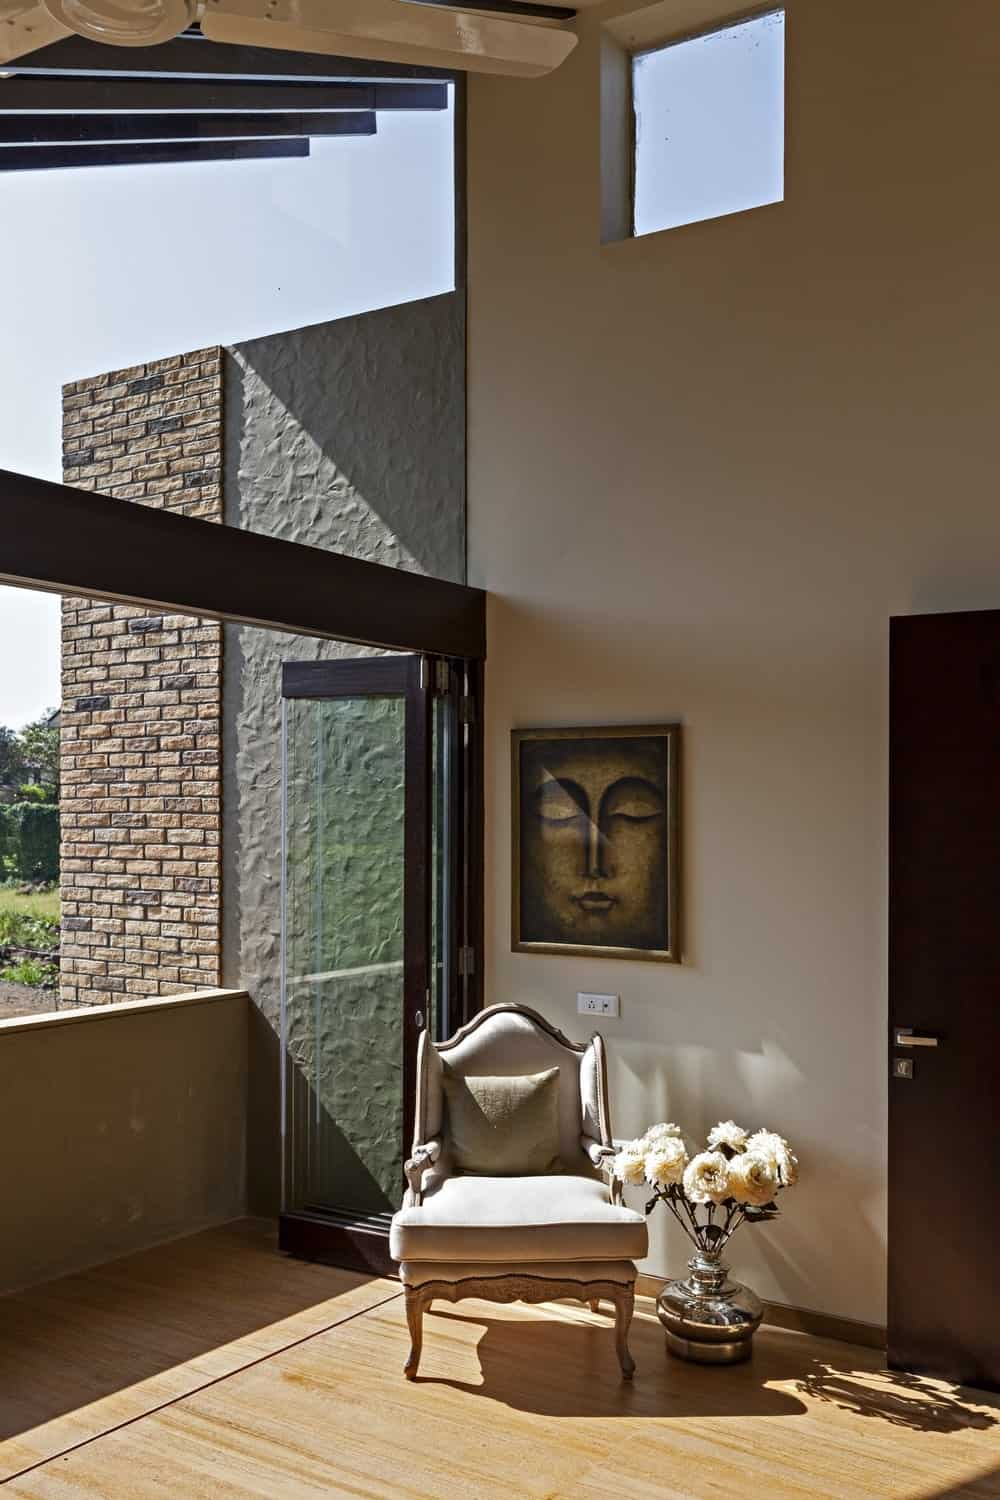 Sitting area in the Monsoon Retreat designed by Abraham John Architects.